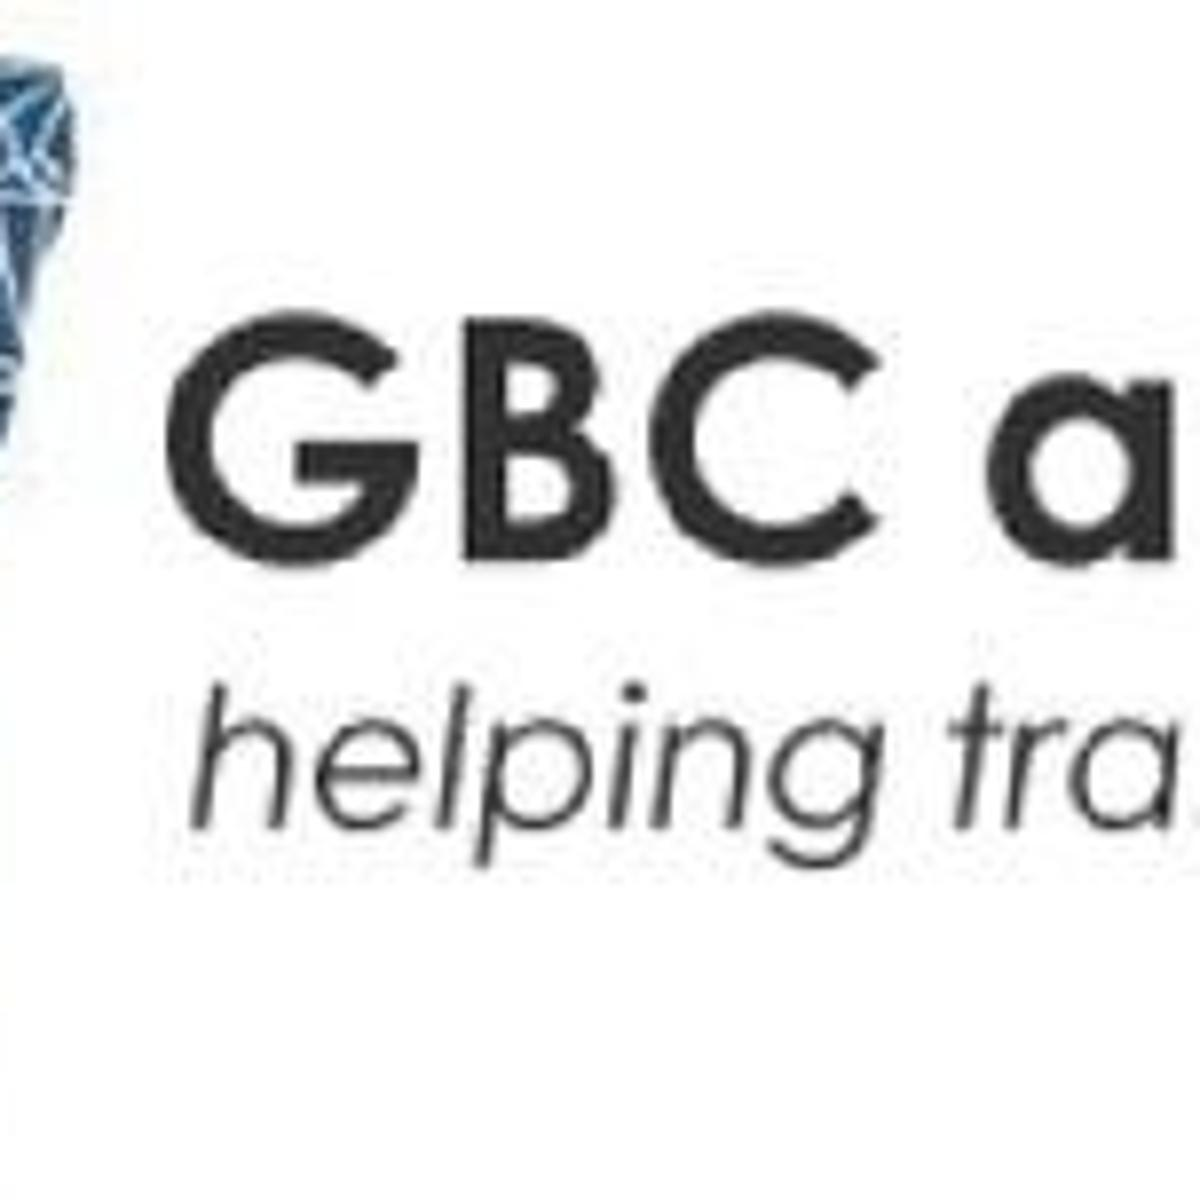 Autism service provider GBC aba opens Normal clinic | Local